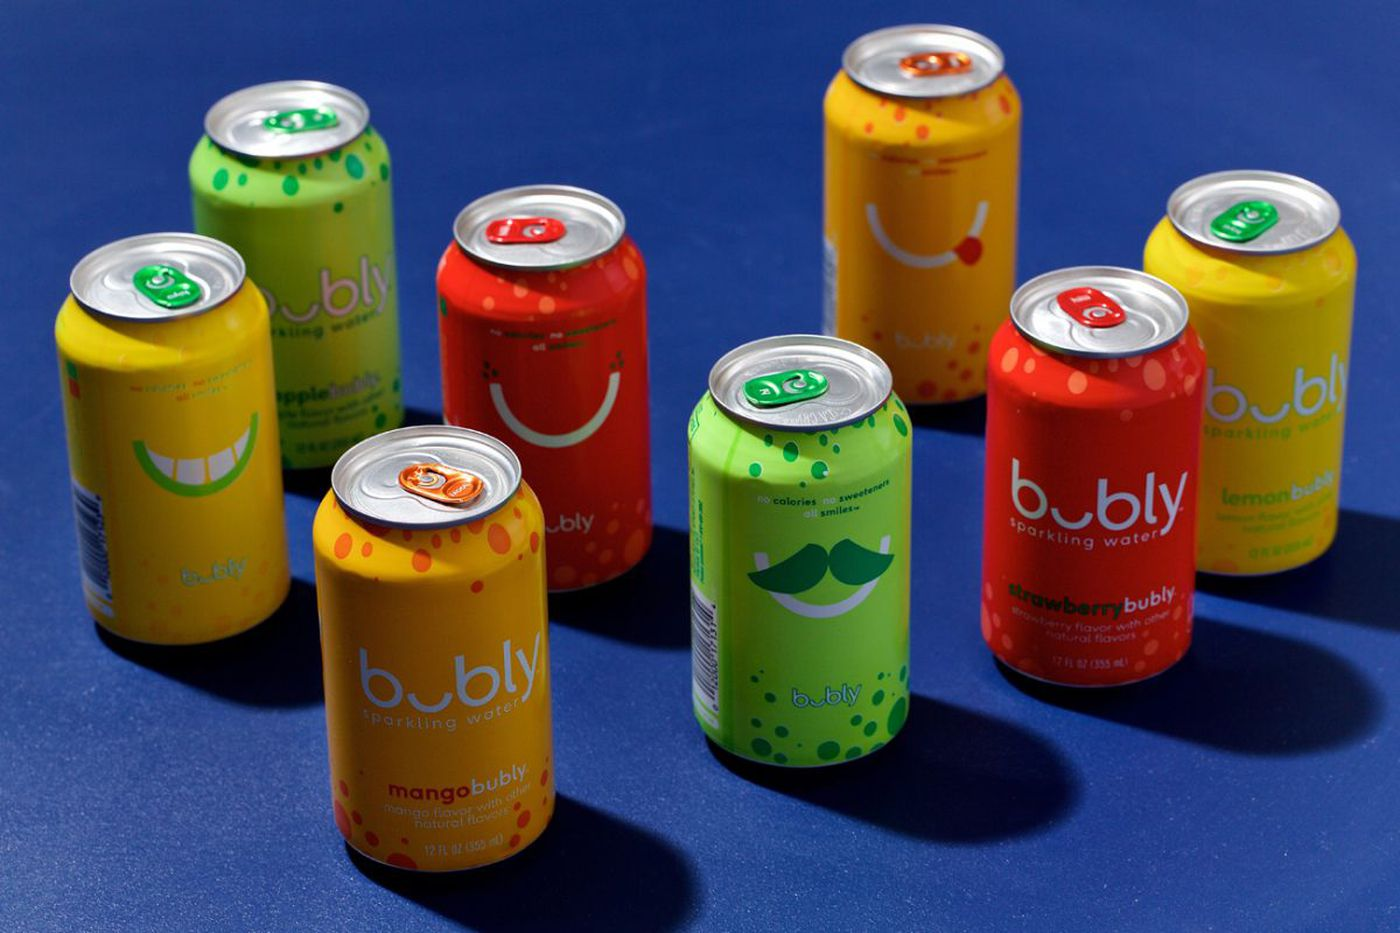 Is Pepsi's Bubly the new LaCroix, or just another cute can?